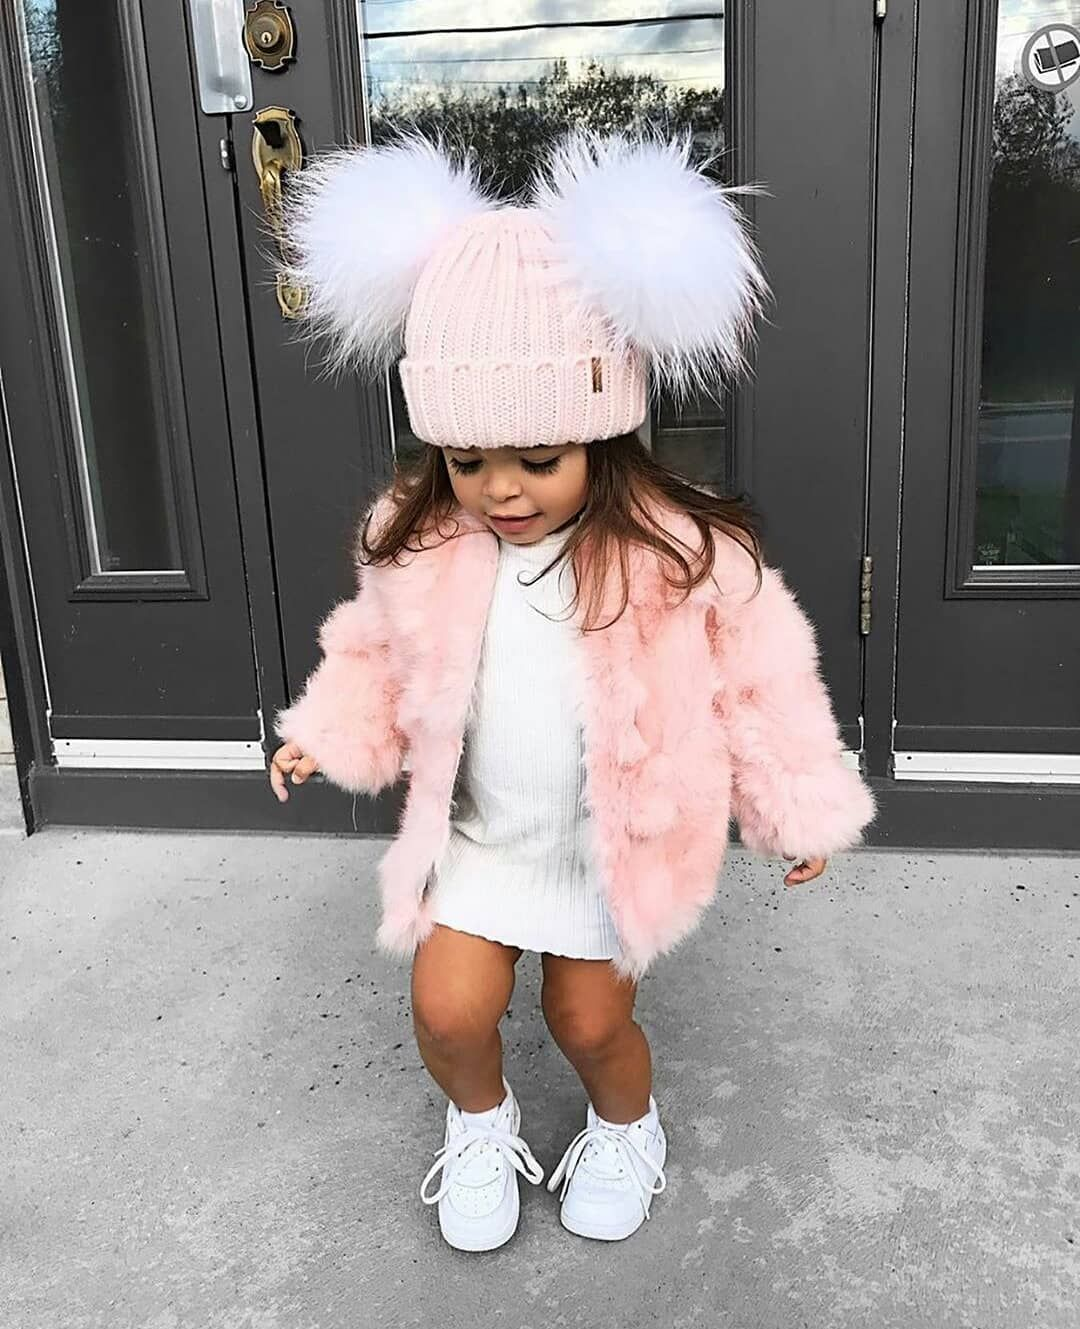 Pin by hallechandlerxox on Dresses  Toddler girl outfits, Kids